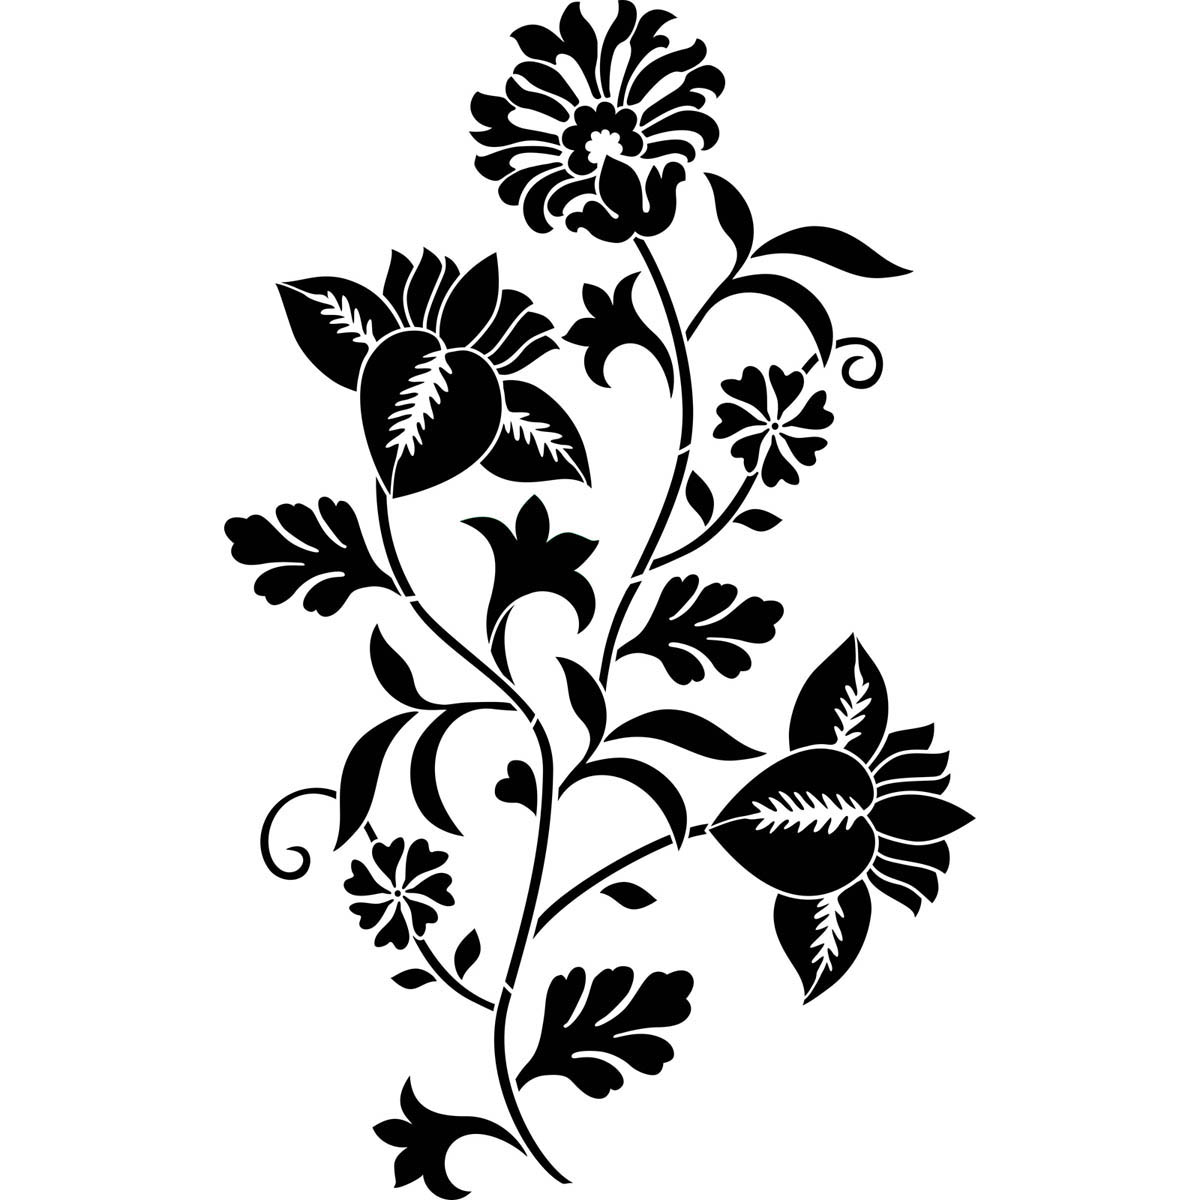 FolkArt ® Painting Stencils - Wall, Floor & Furniture - Climbing Floral